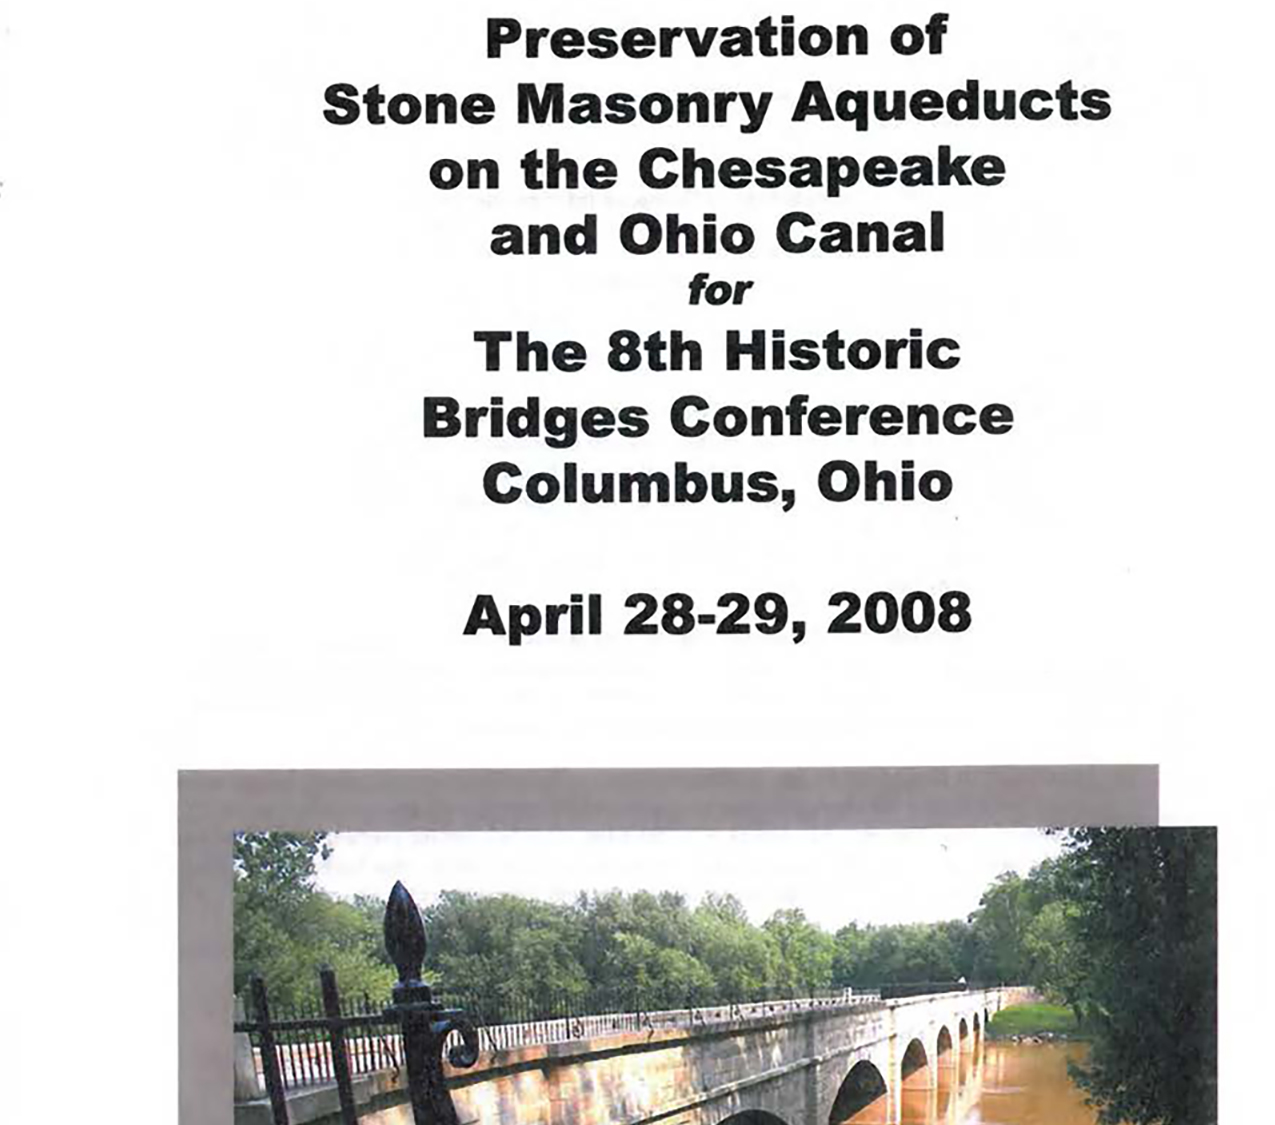 Preservation of Stone Masonry Aqueducts on the C&O Canal   White Paper for 8th Historic Bridges Conference  Co-authored by  Denis McMullan, PE  and  Douglas Bond, PE, SE